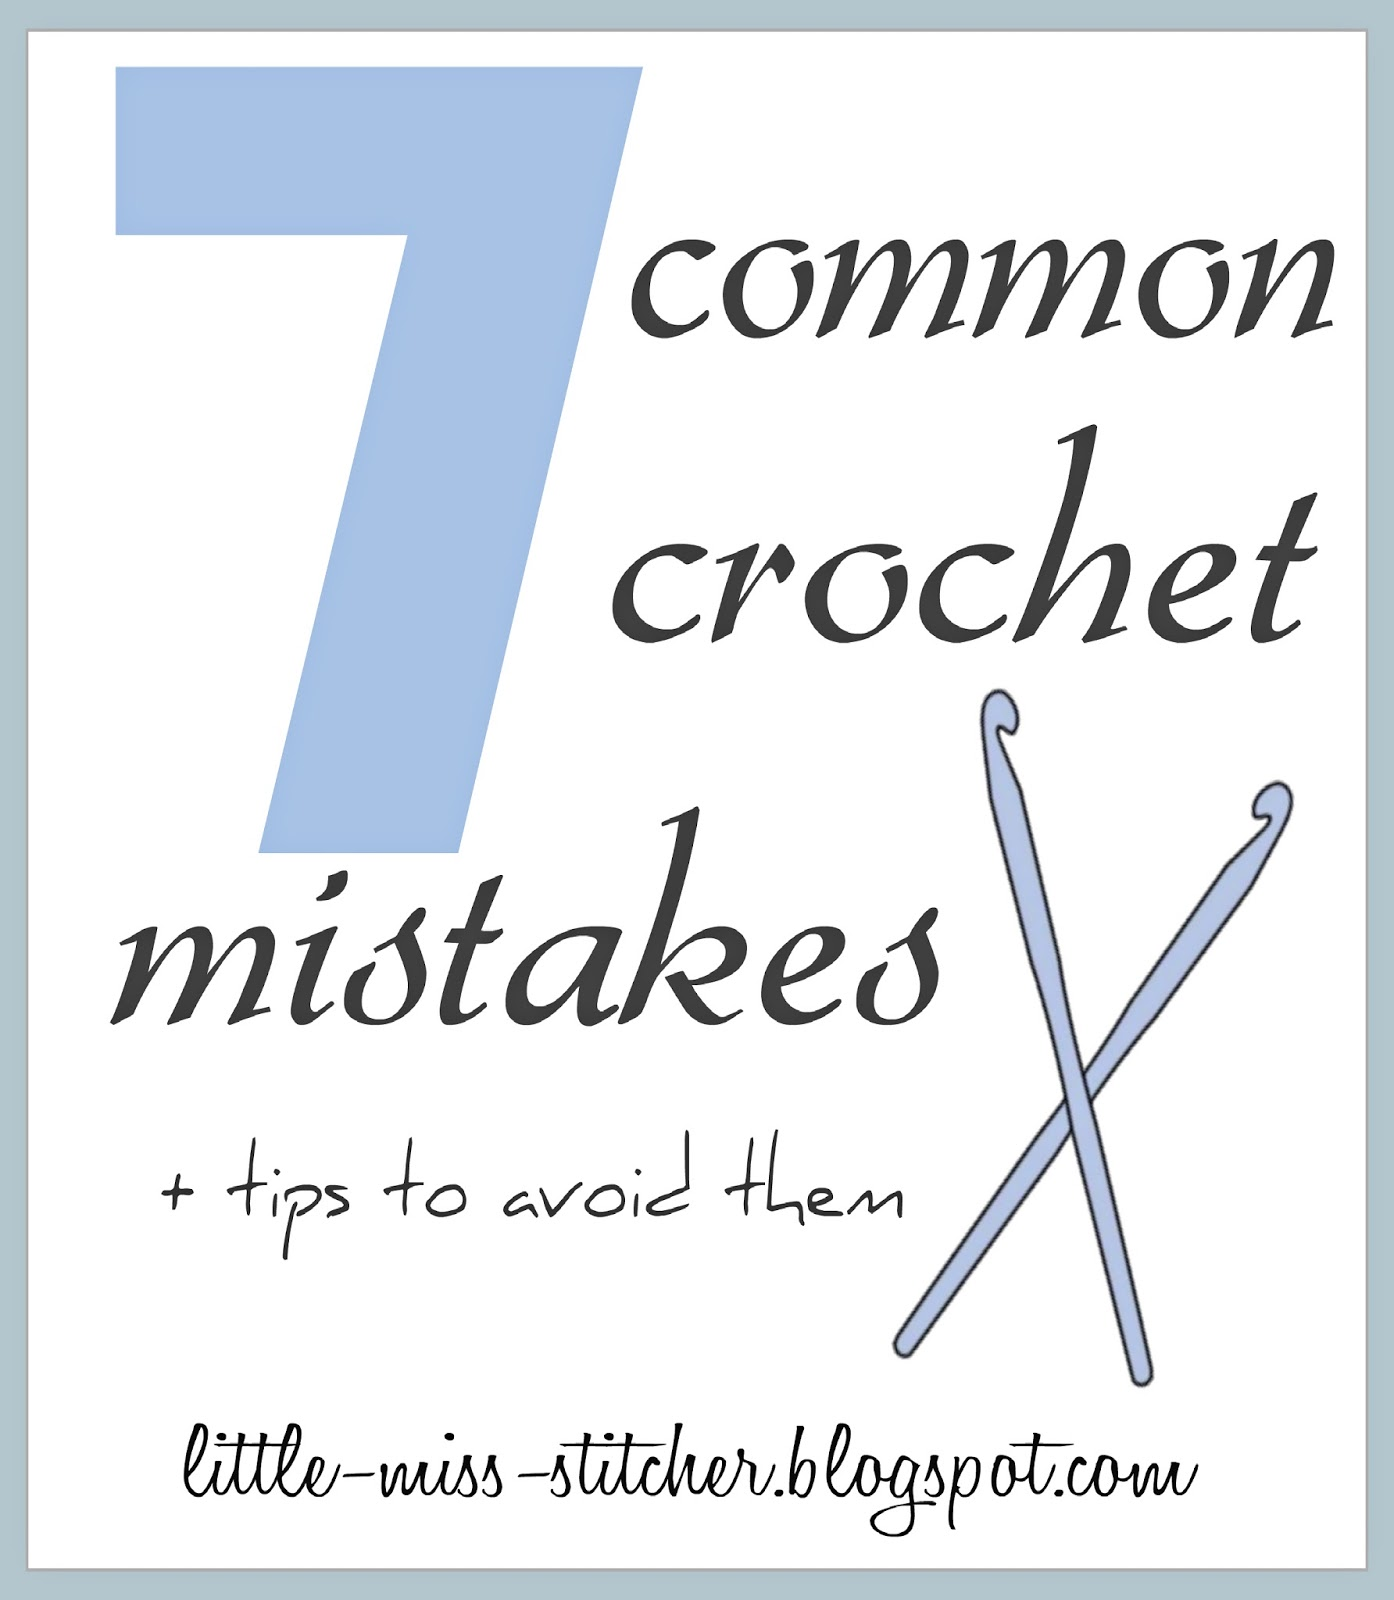 Crocheting Mistakes : with crochet. Ive compiled a list of 7 common crochet mistakes ...